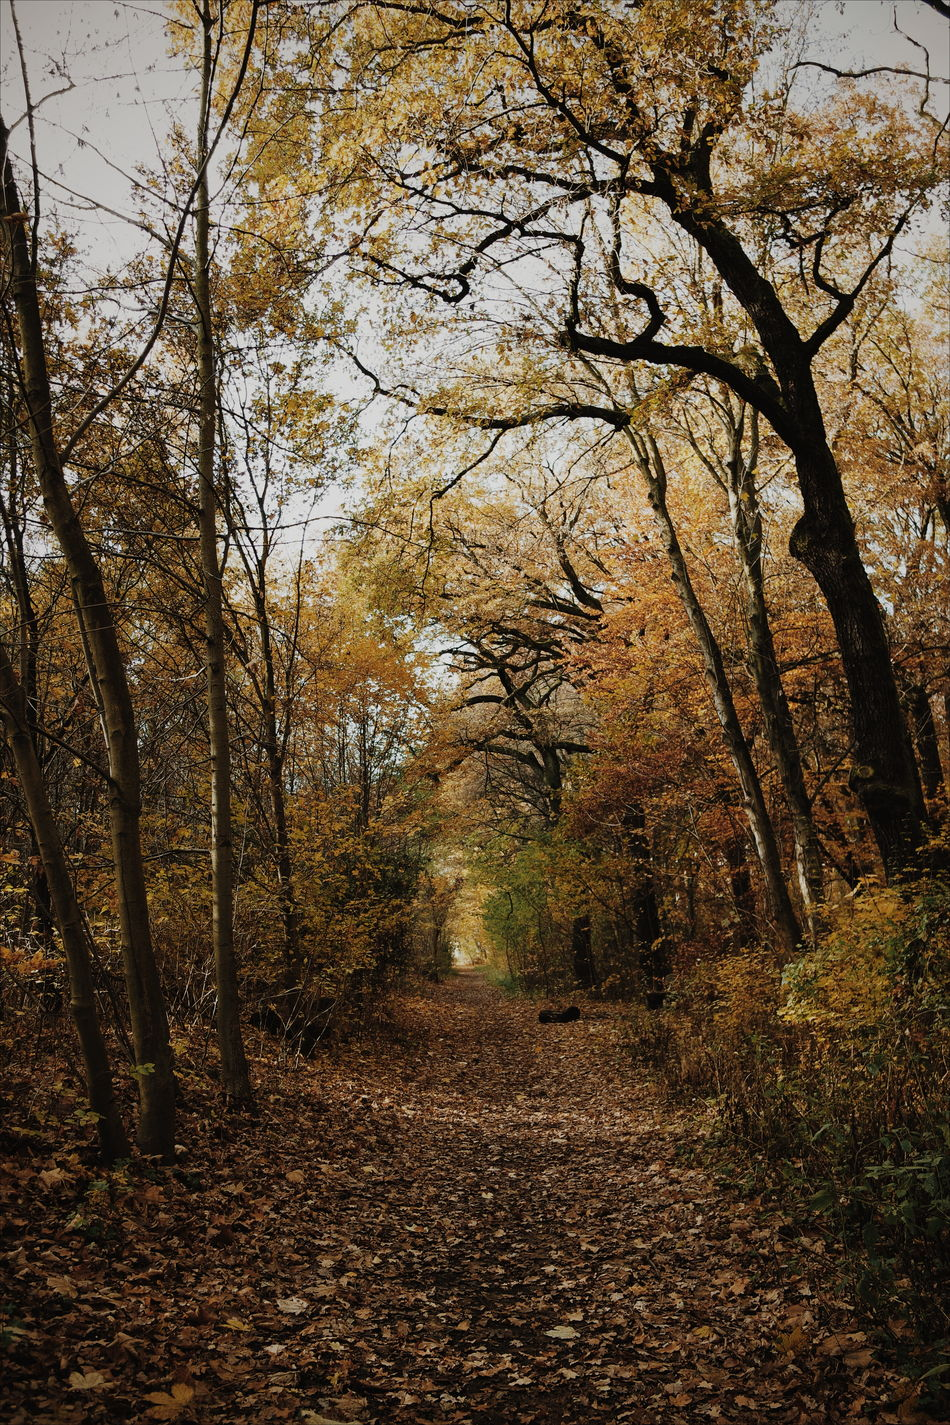 Outdoors Autumn No People Nature Beauty In Nature Tree Scenics Day Autumn Orange Autumn Colors Forest Path Nature